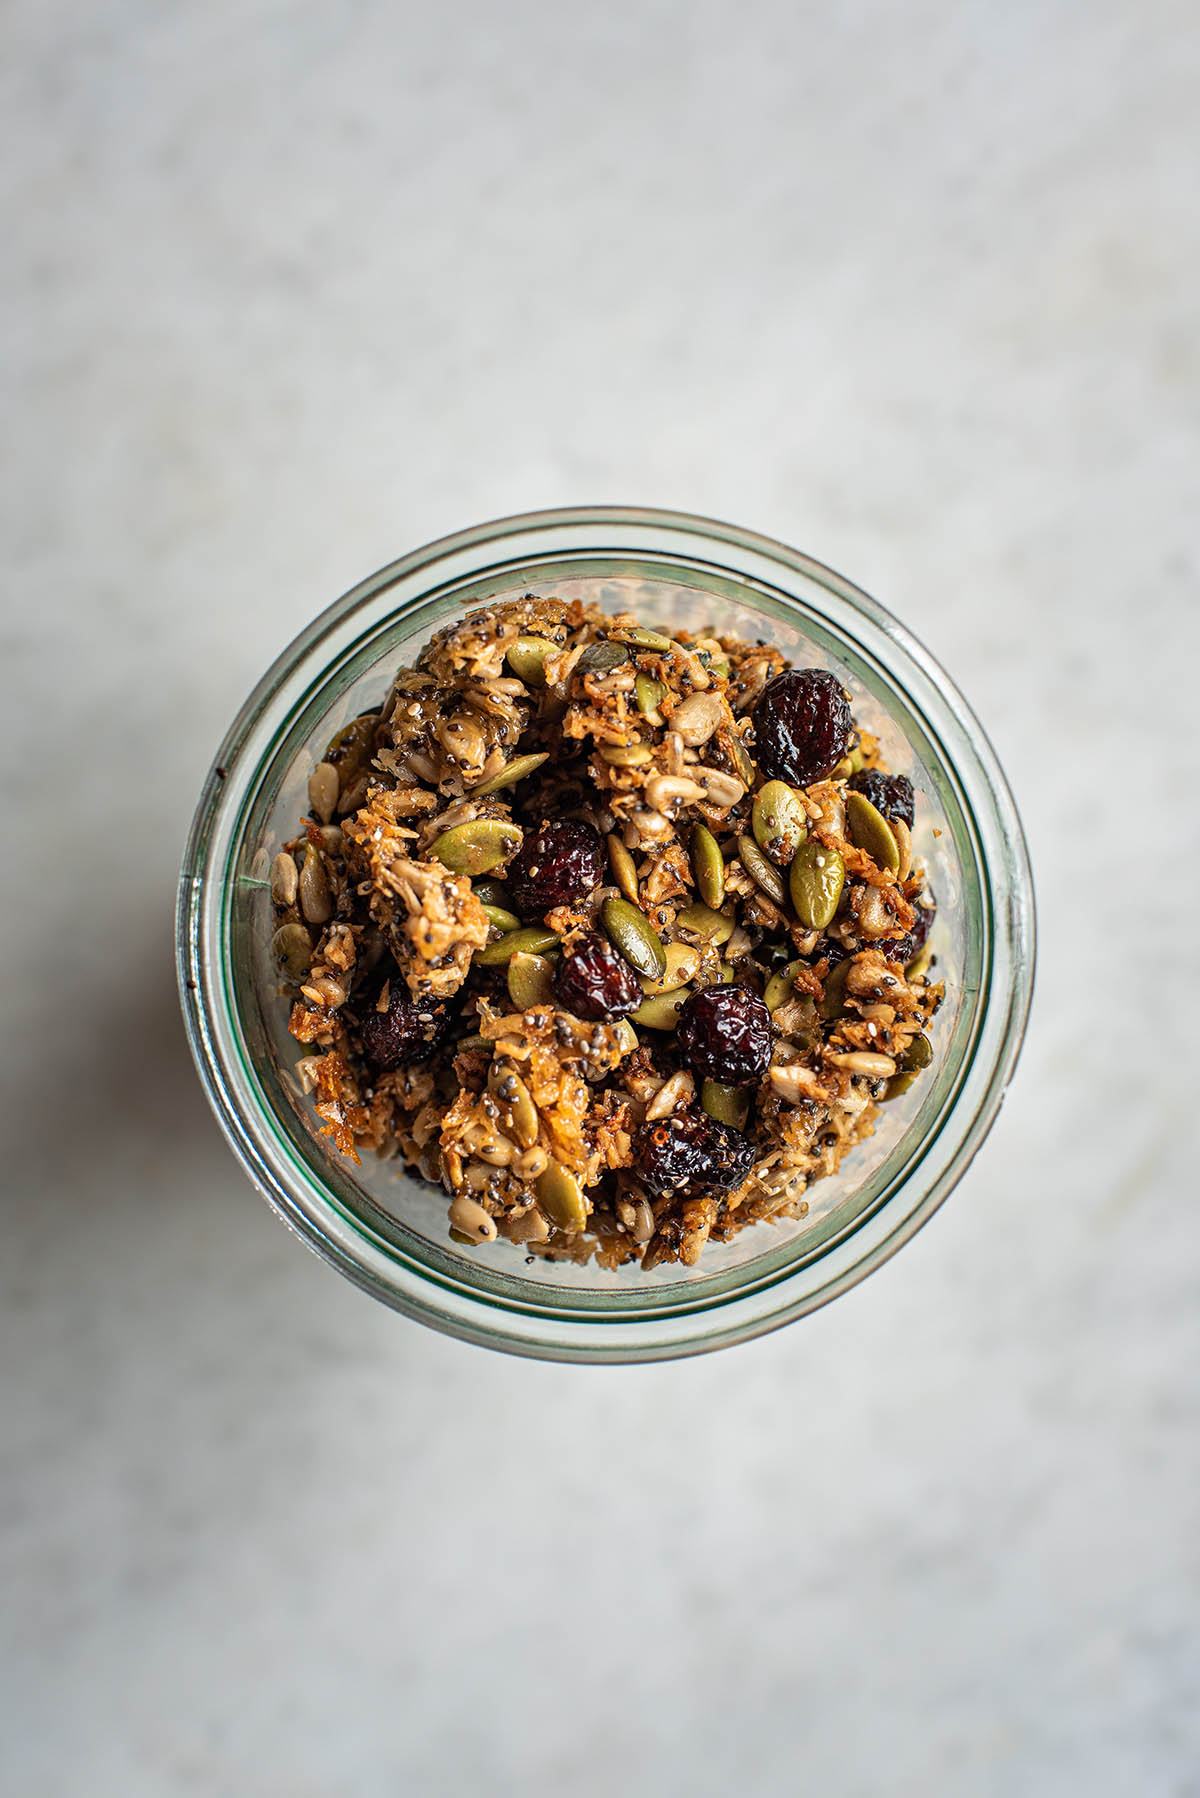 Grain free granola with dried cranberries in a jar, top down view.